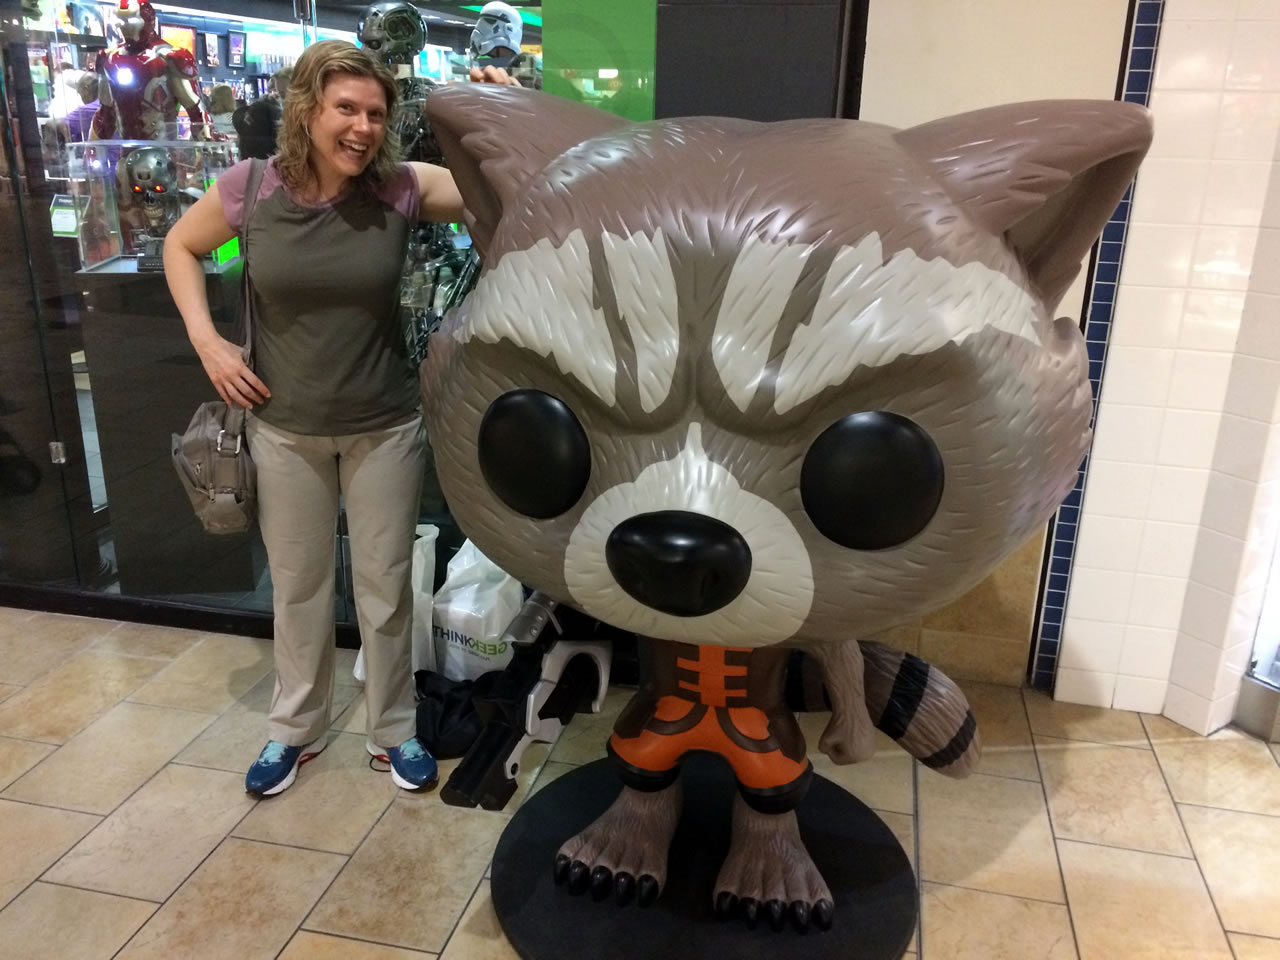 03 thinkgeek store exterior - anitra and rocket